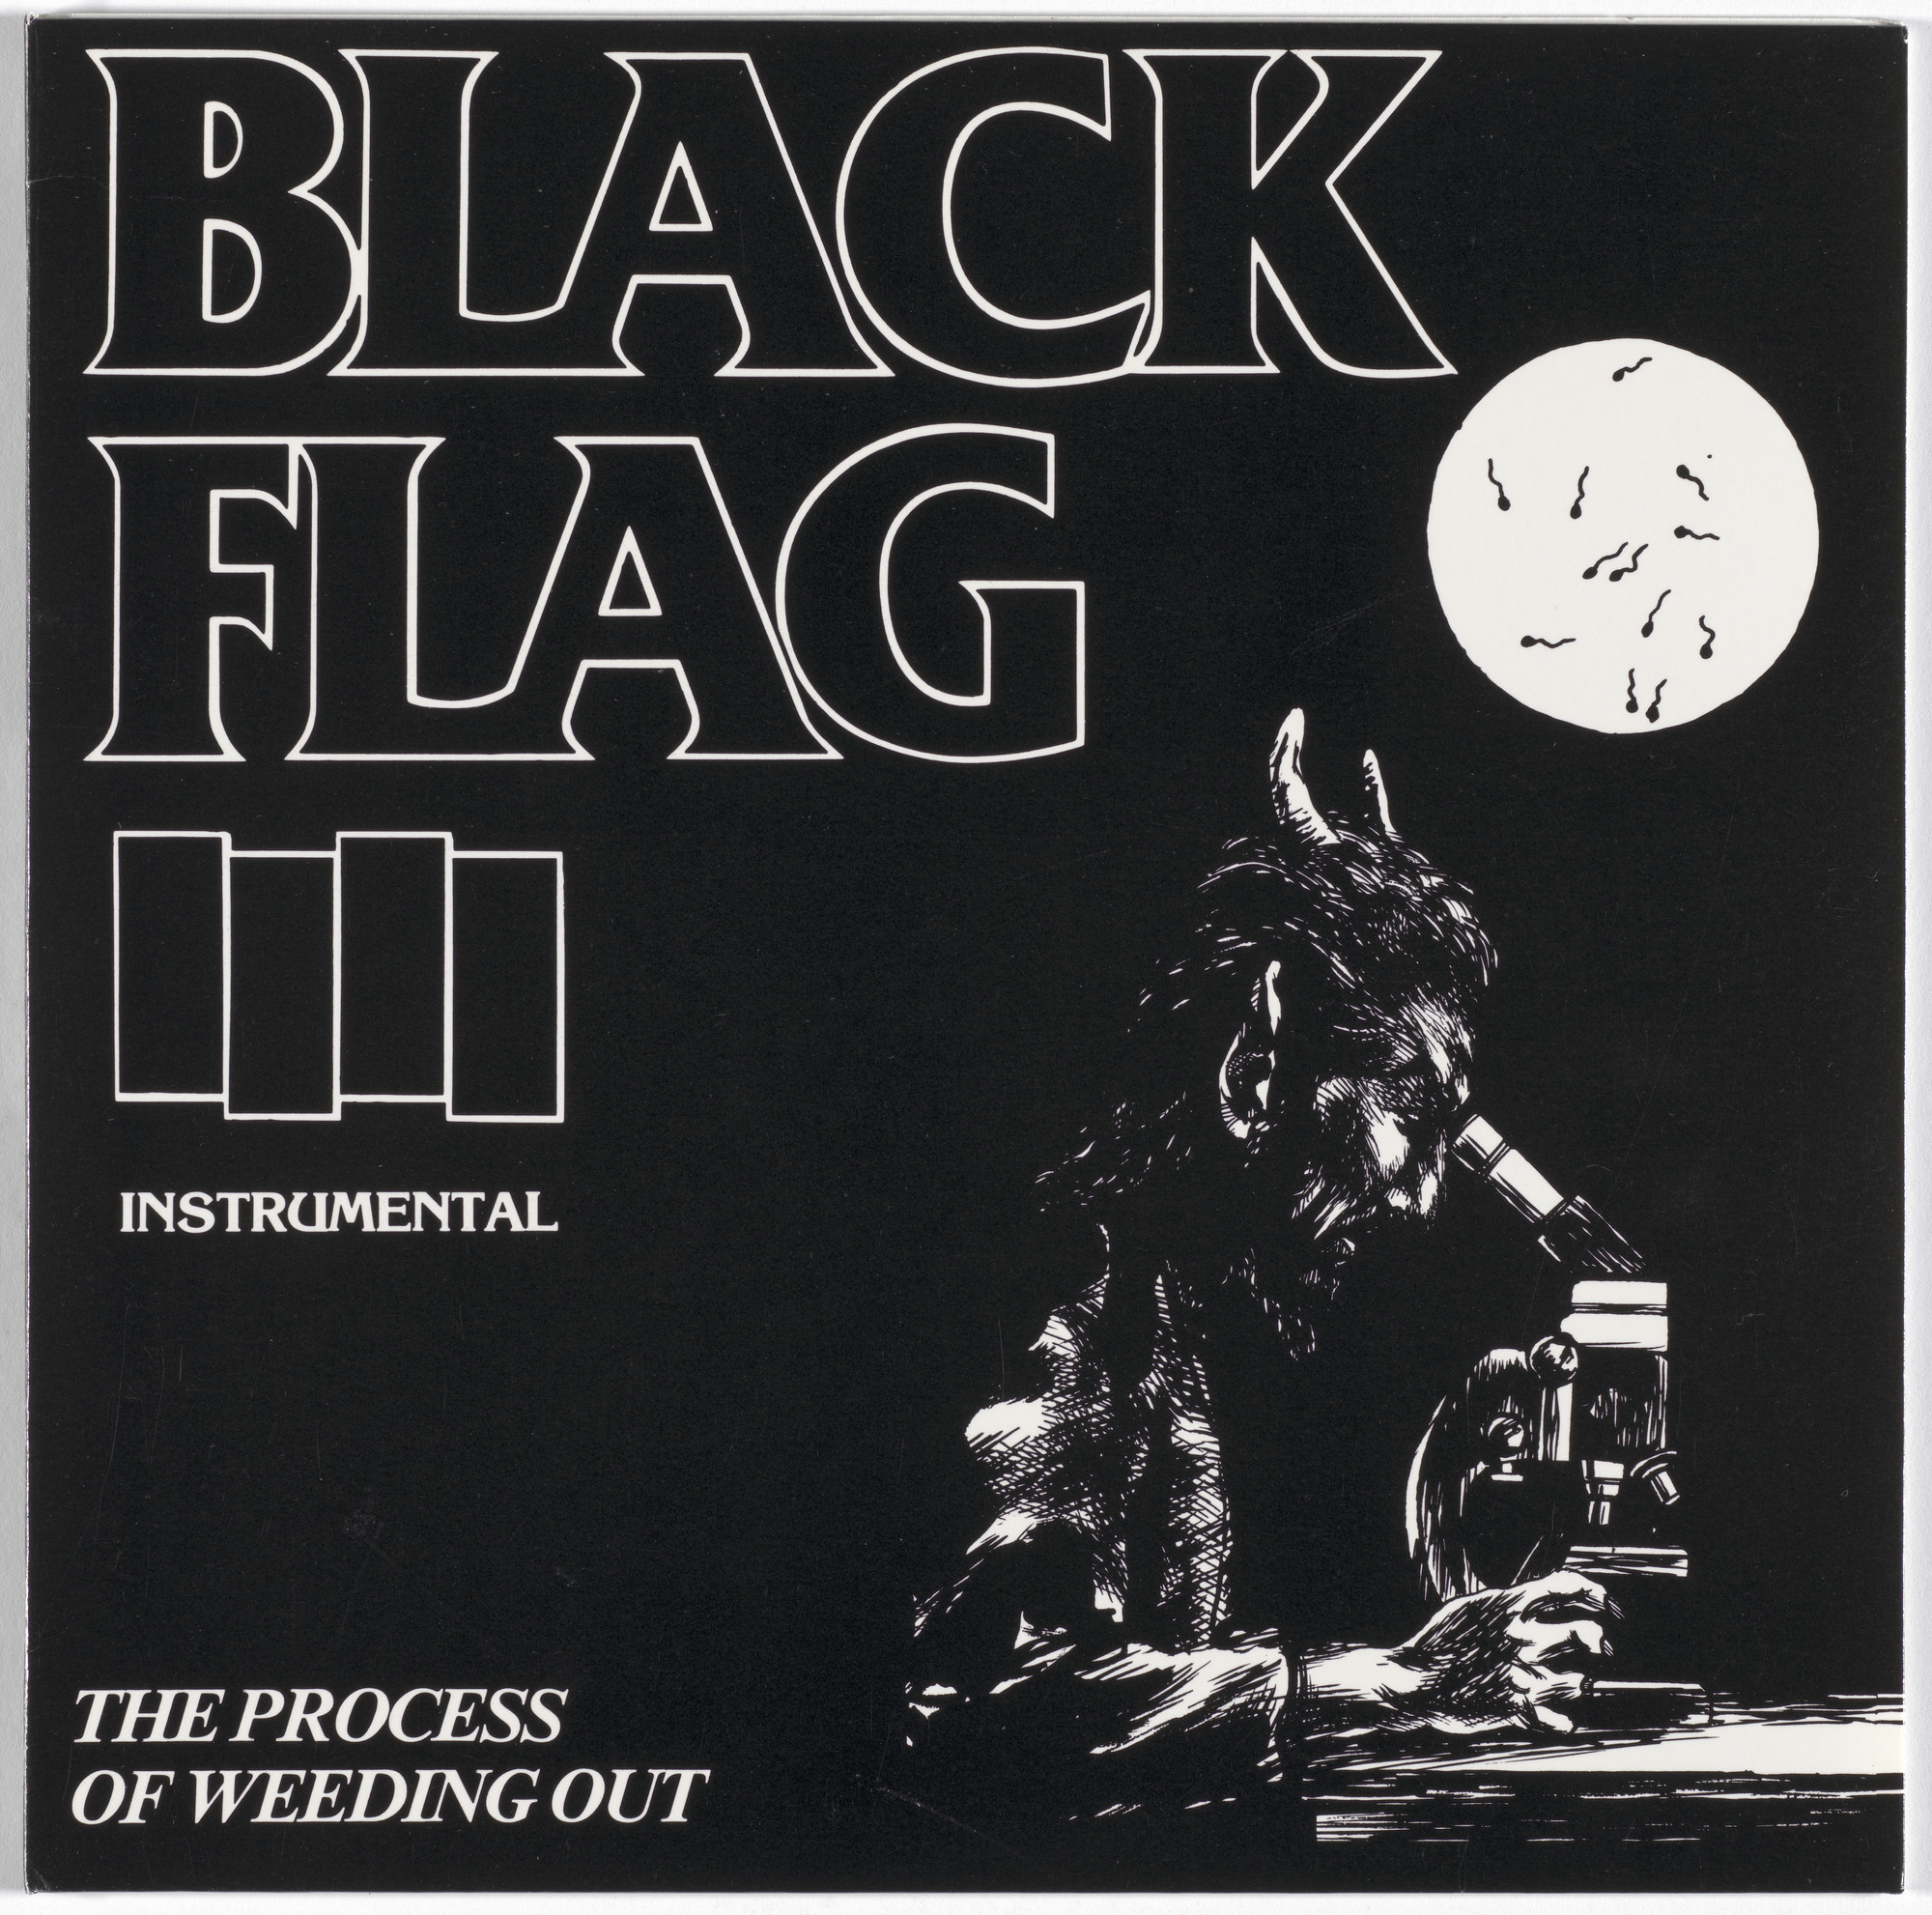 Black Flag, Raymond Pettibon. The Process of Weeding Out. 1985, released 1991